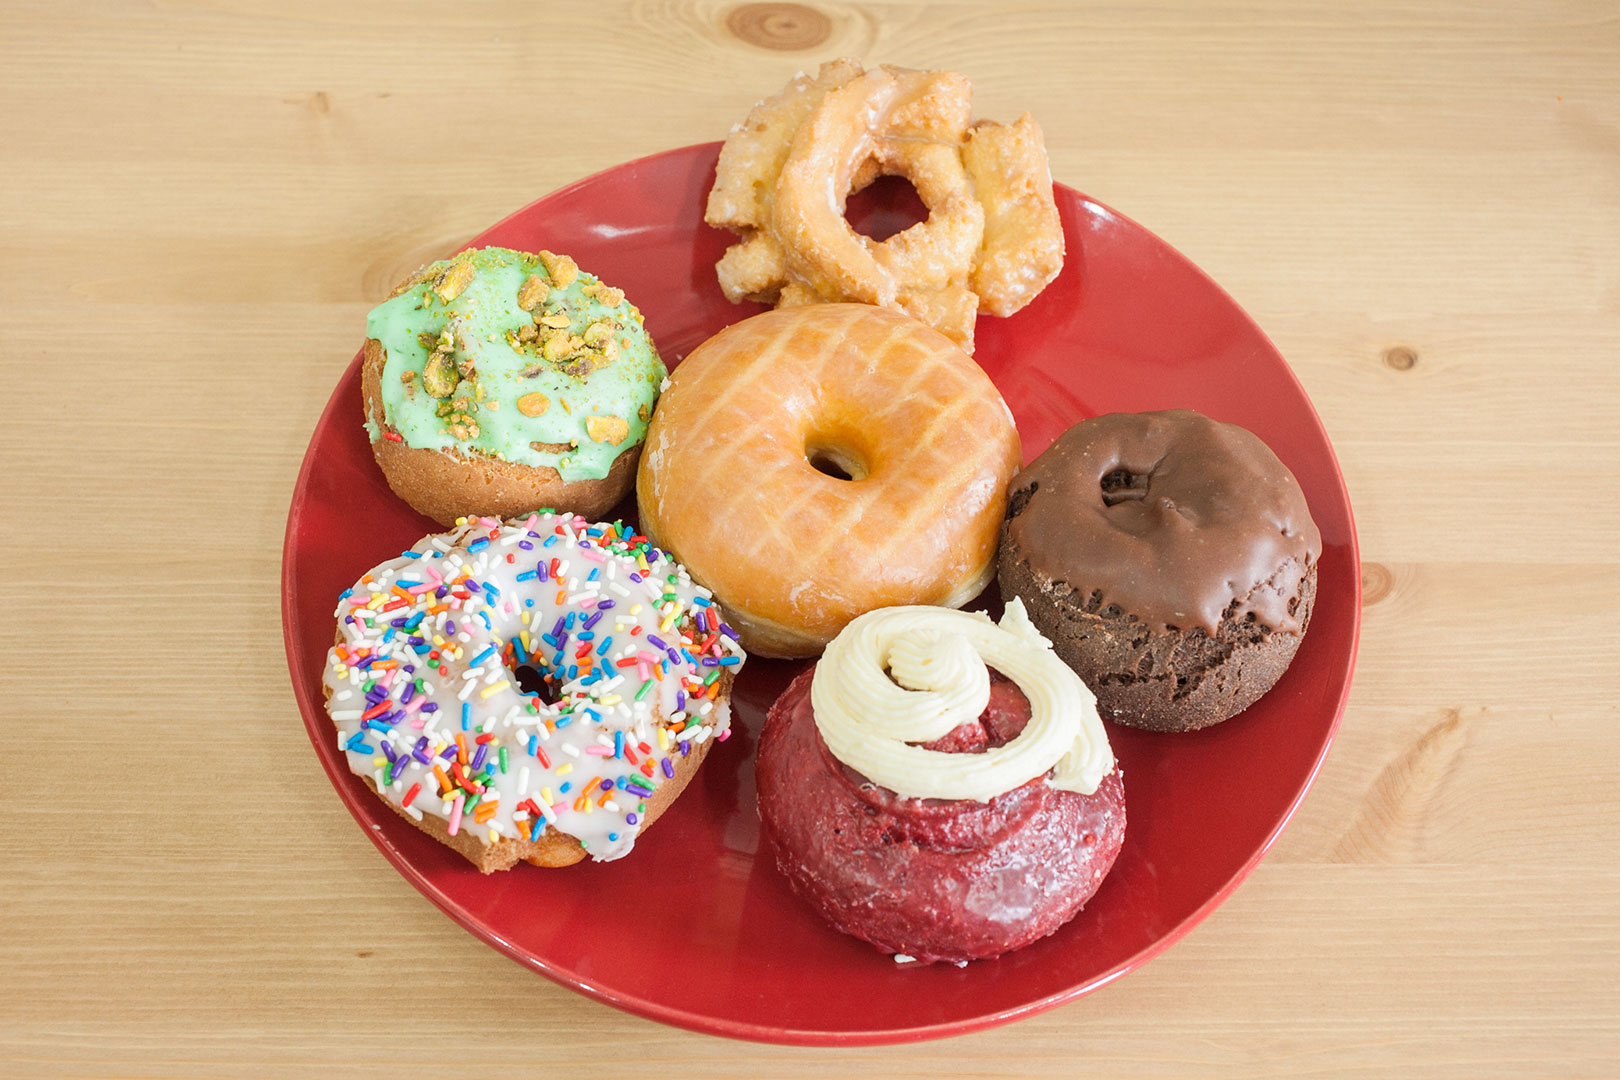 Assortment of lard-free doughnuts from Donut Drop in Schaumburg, IL at Brewpoint Coffee in Elmhurst, IL.